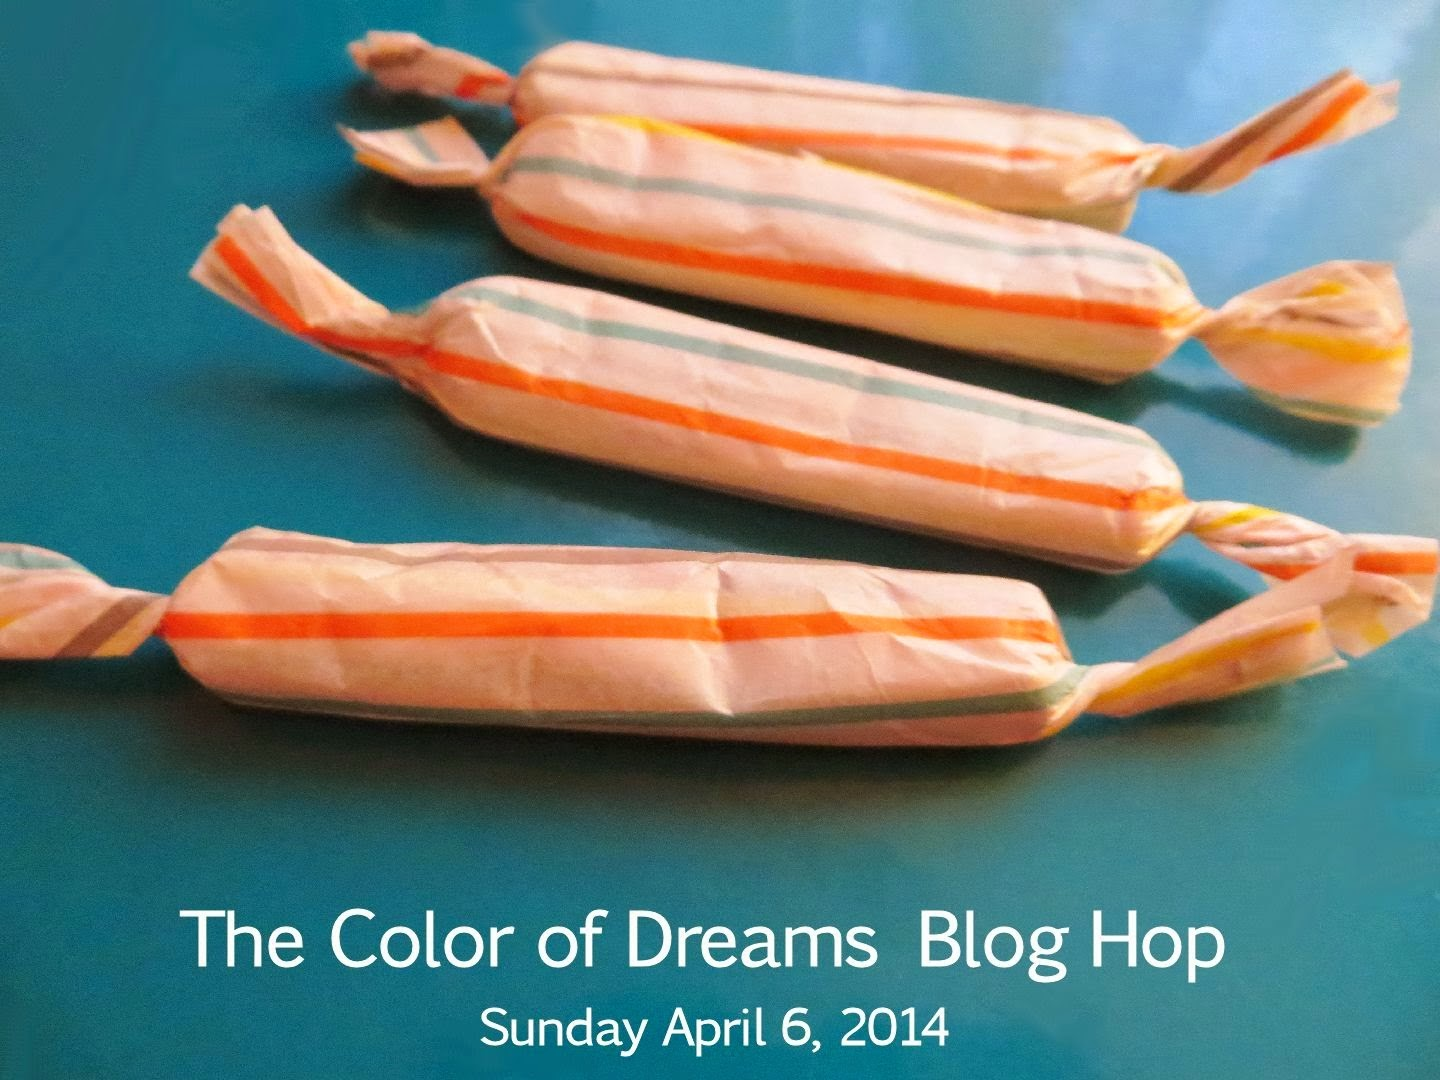 Color of Dreams Blog Hop